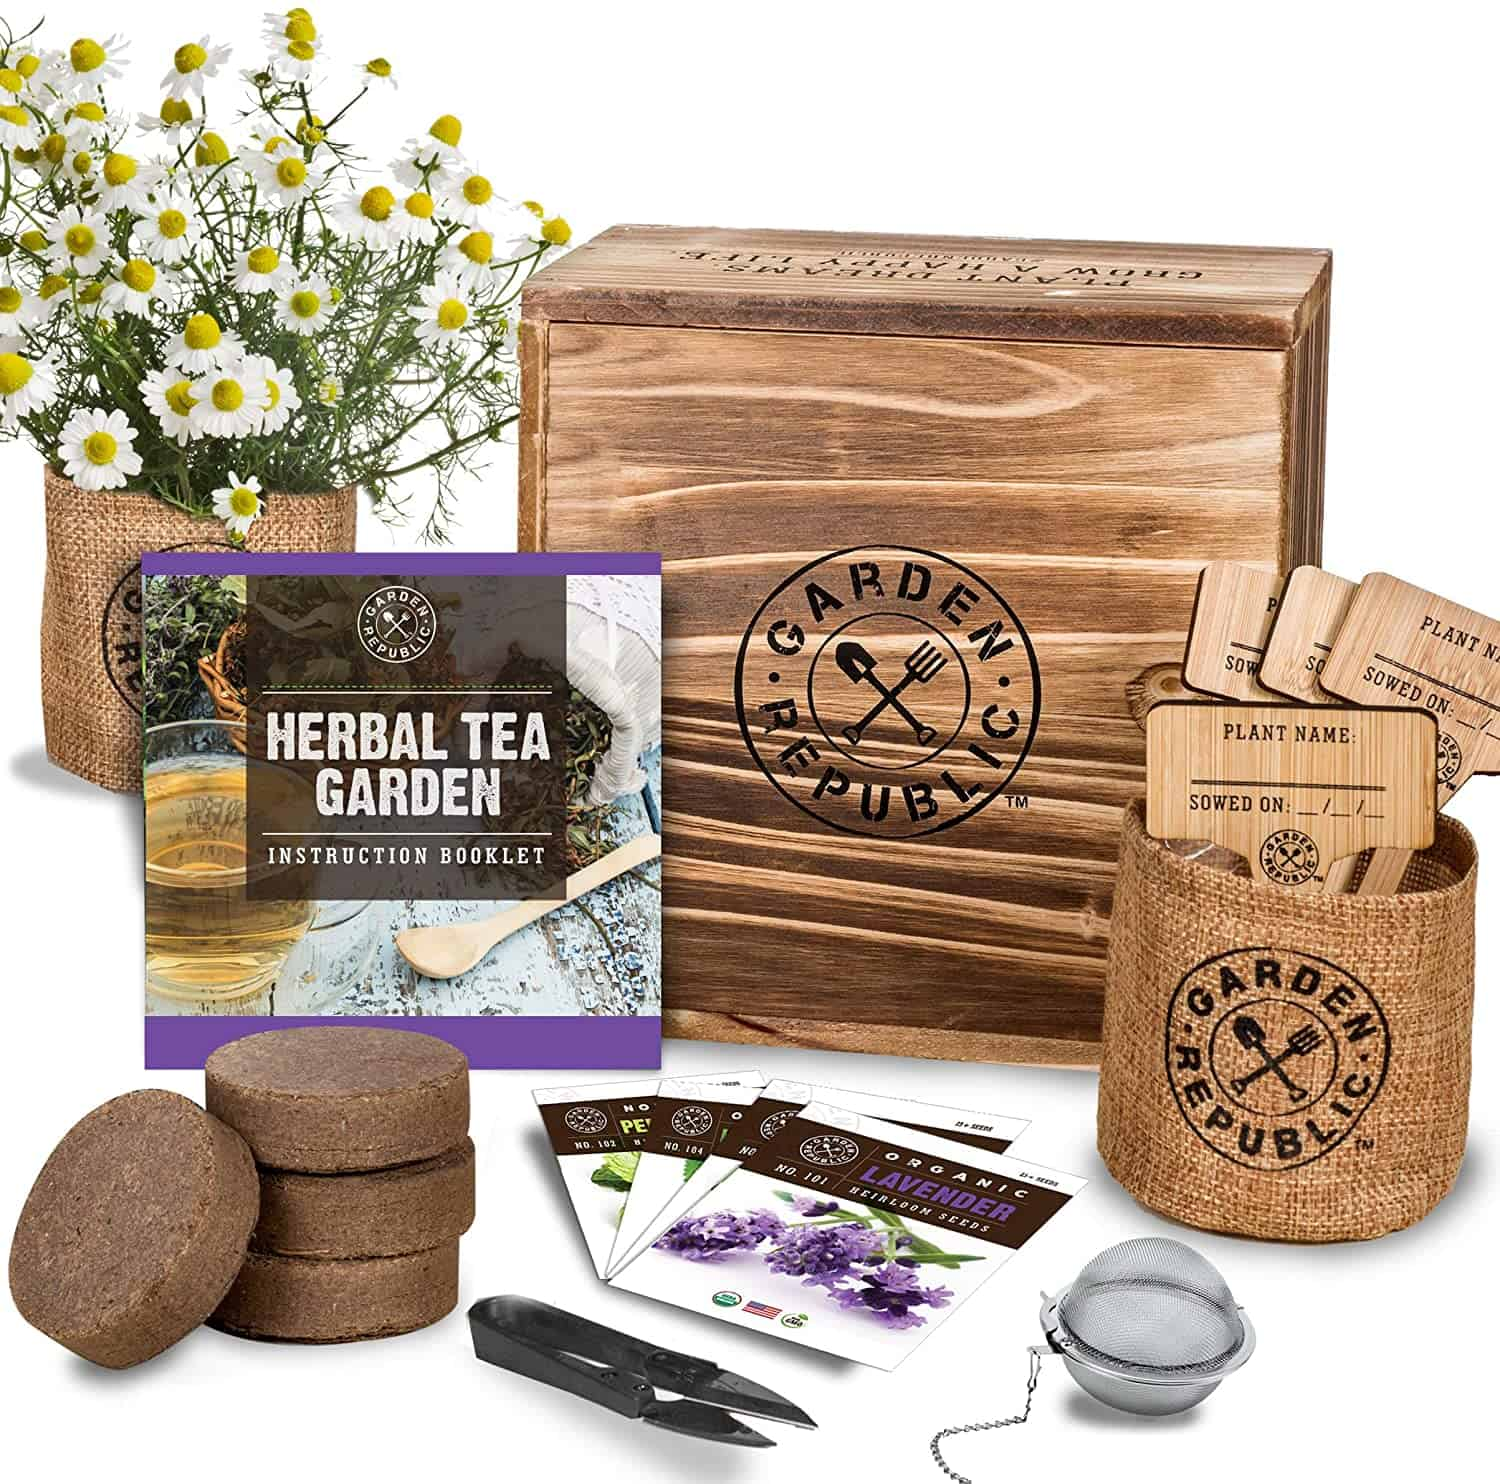 Indoor Herb Garden Seed Starter Kit - Herbal Tea Growing Kits, Grow Medicinal Herbs Indoors, Lavender, Chamomile, Lemon Balm, Mint Seeds for Planting, Soil, Plant Markers, Pots, Infuser, Planter Box